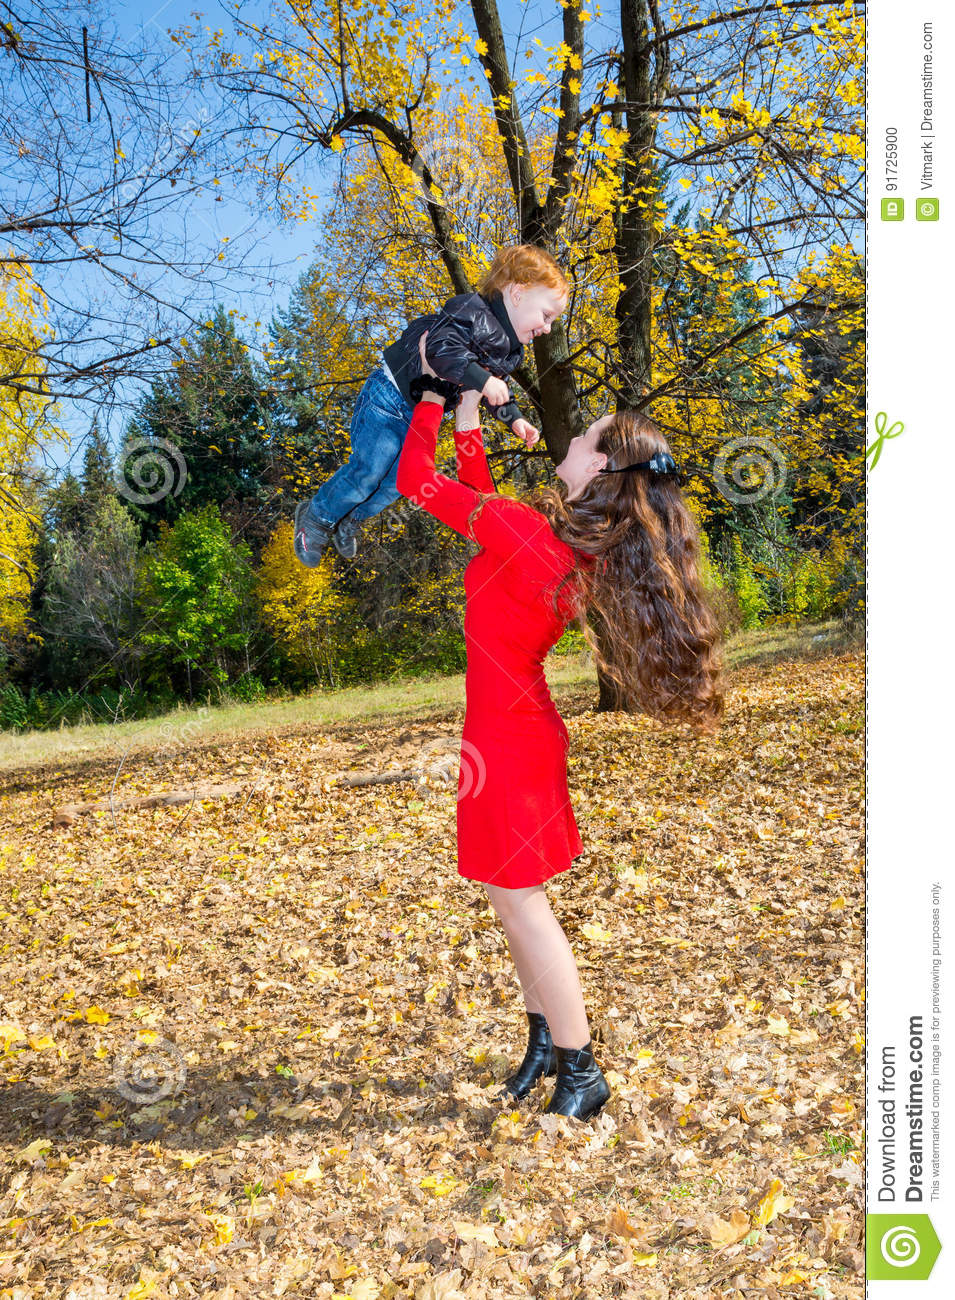 Young Mother and son in autumn park. happy family: mother and child boy play cuddling on autumn walk in nature outdoors